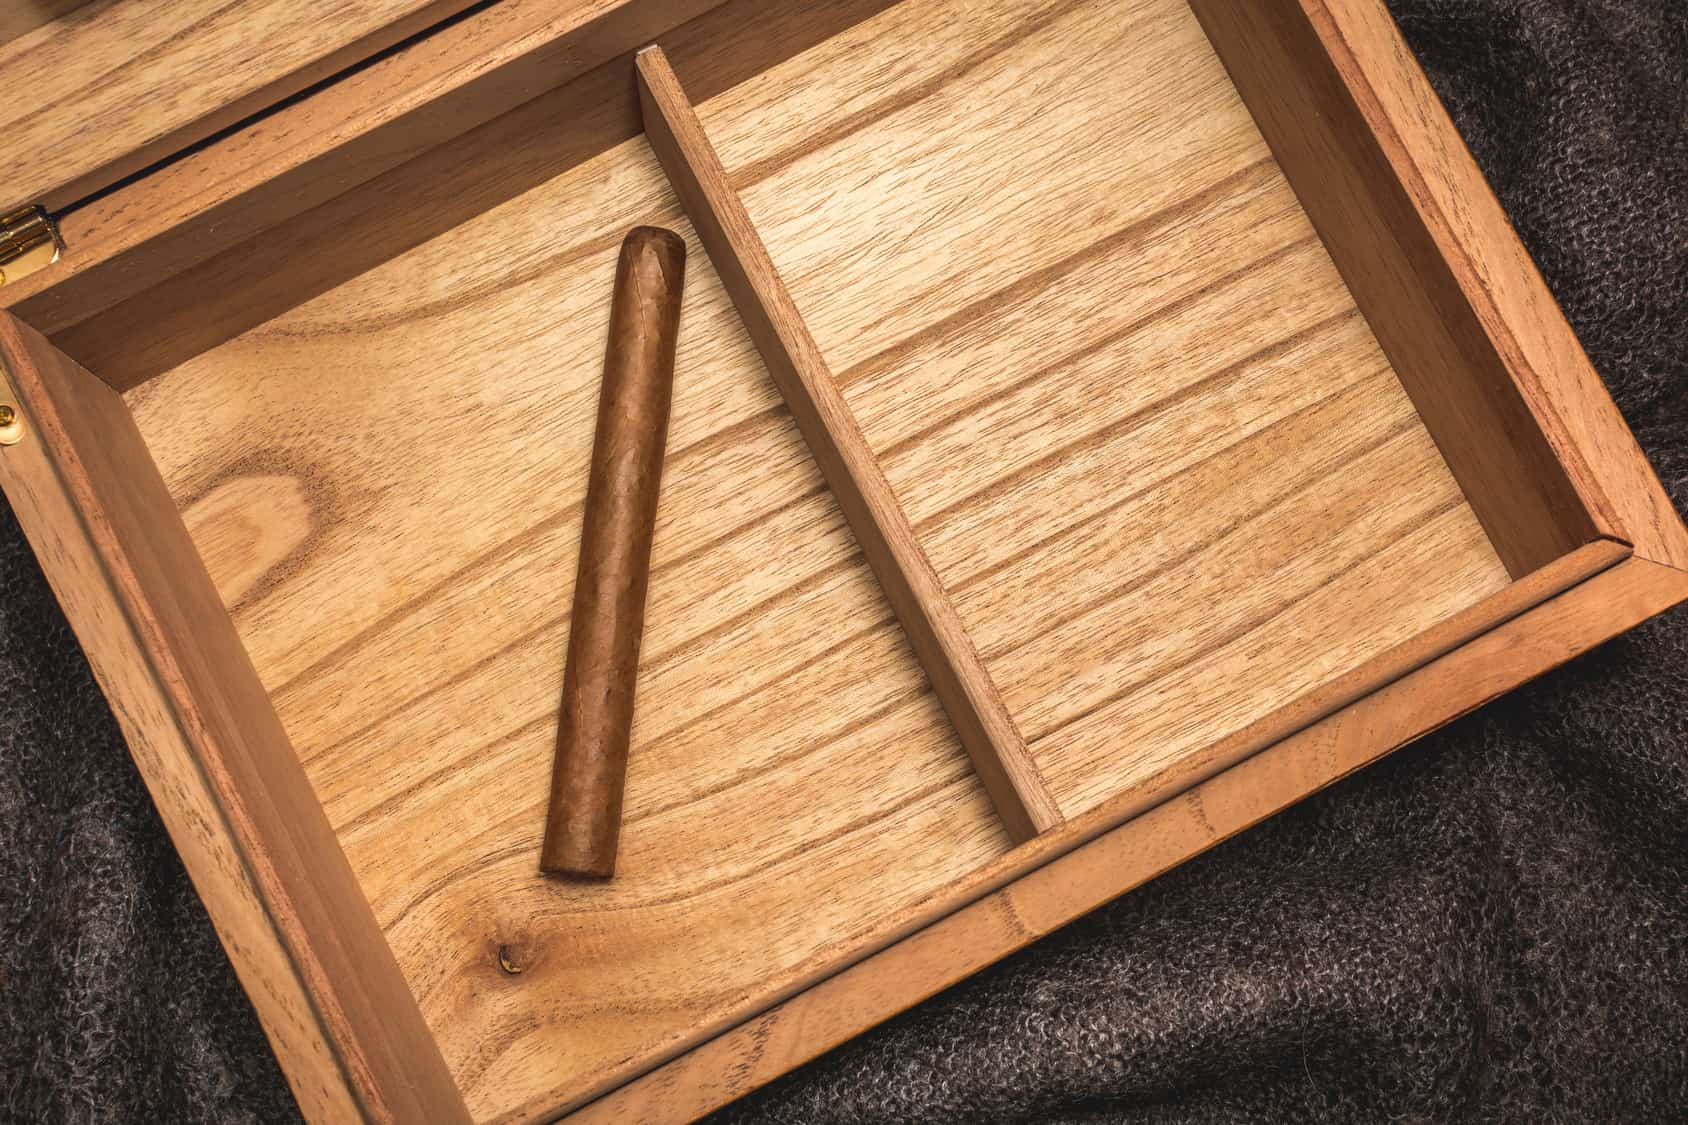 How to Make Cigar Humidor Of Your Own